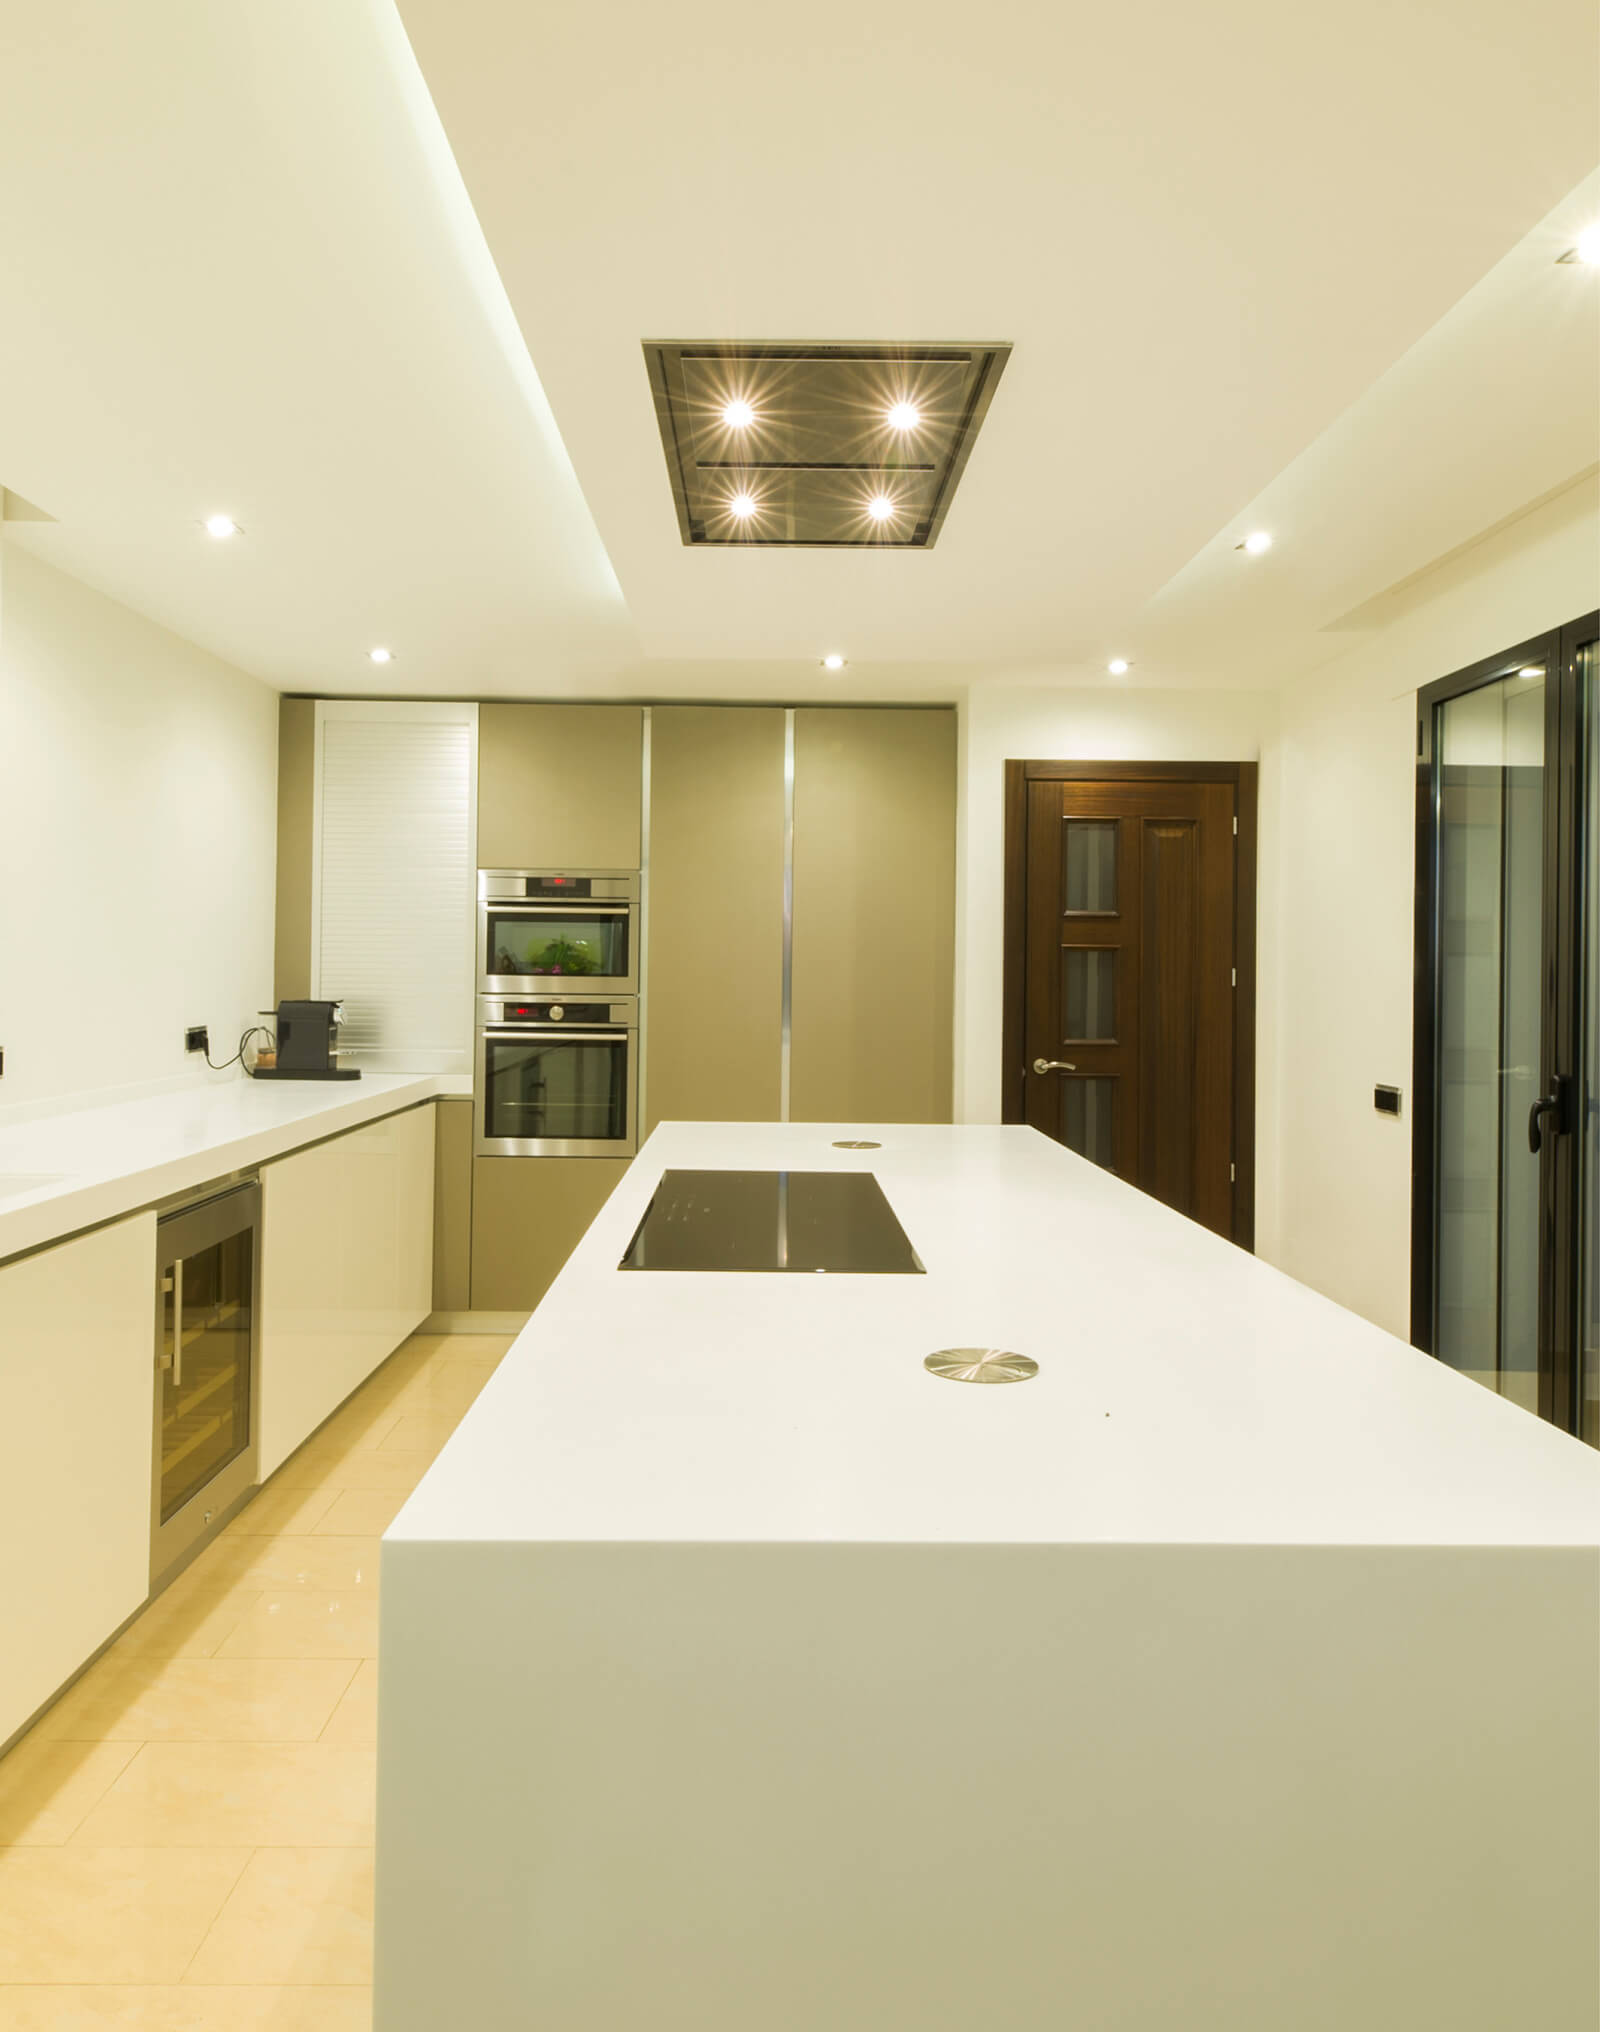 Contemporary Colonial Style Villa kitchen